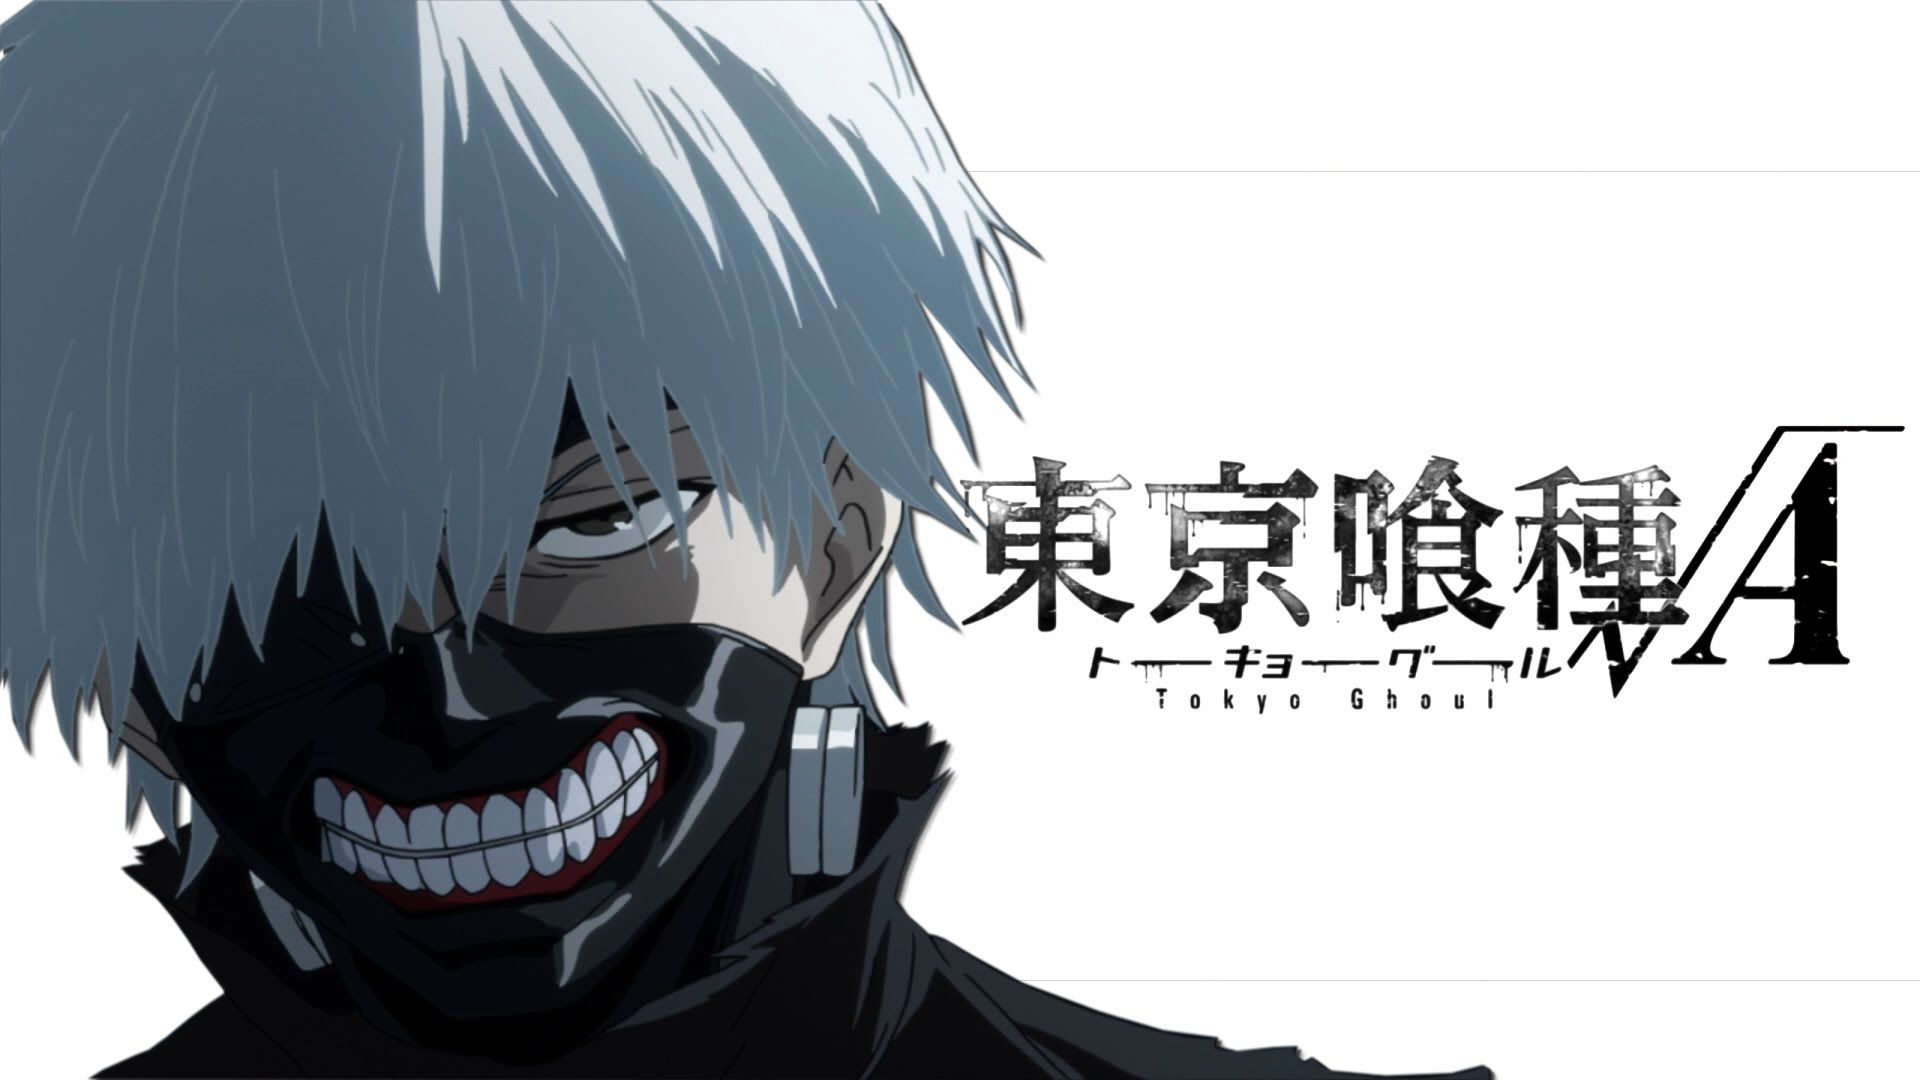 How Well Do You Know About Tokyo Ghoul Tokyo Ghoul Wallpapers Tokyo Ghoul Ss3 Tokyo Ghoul